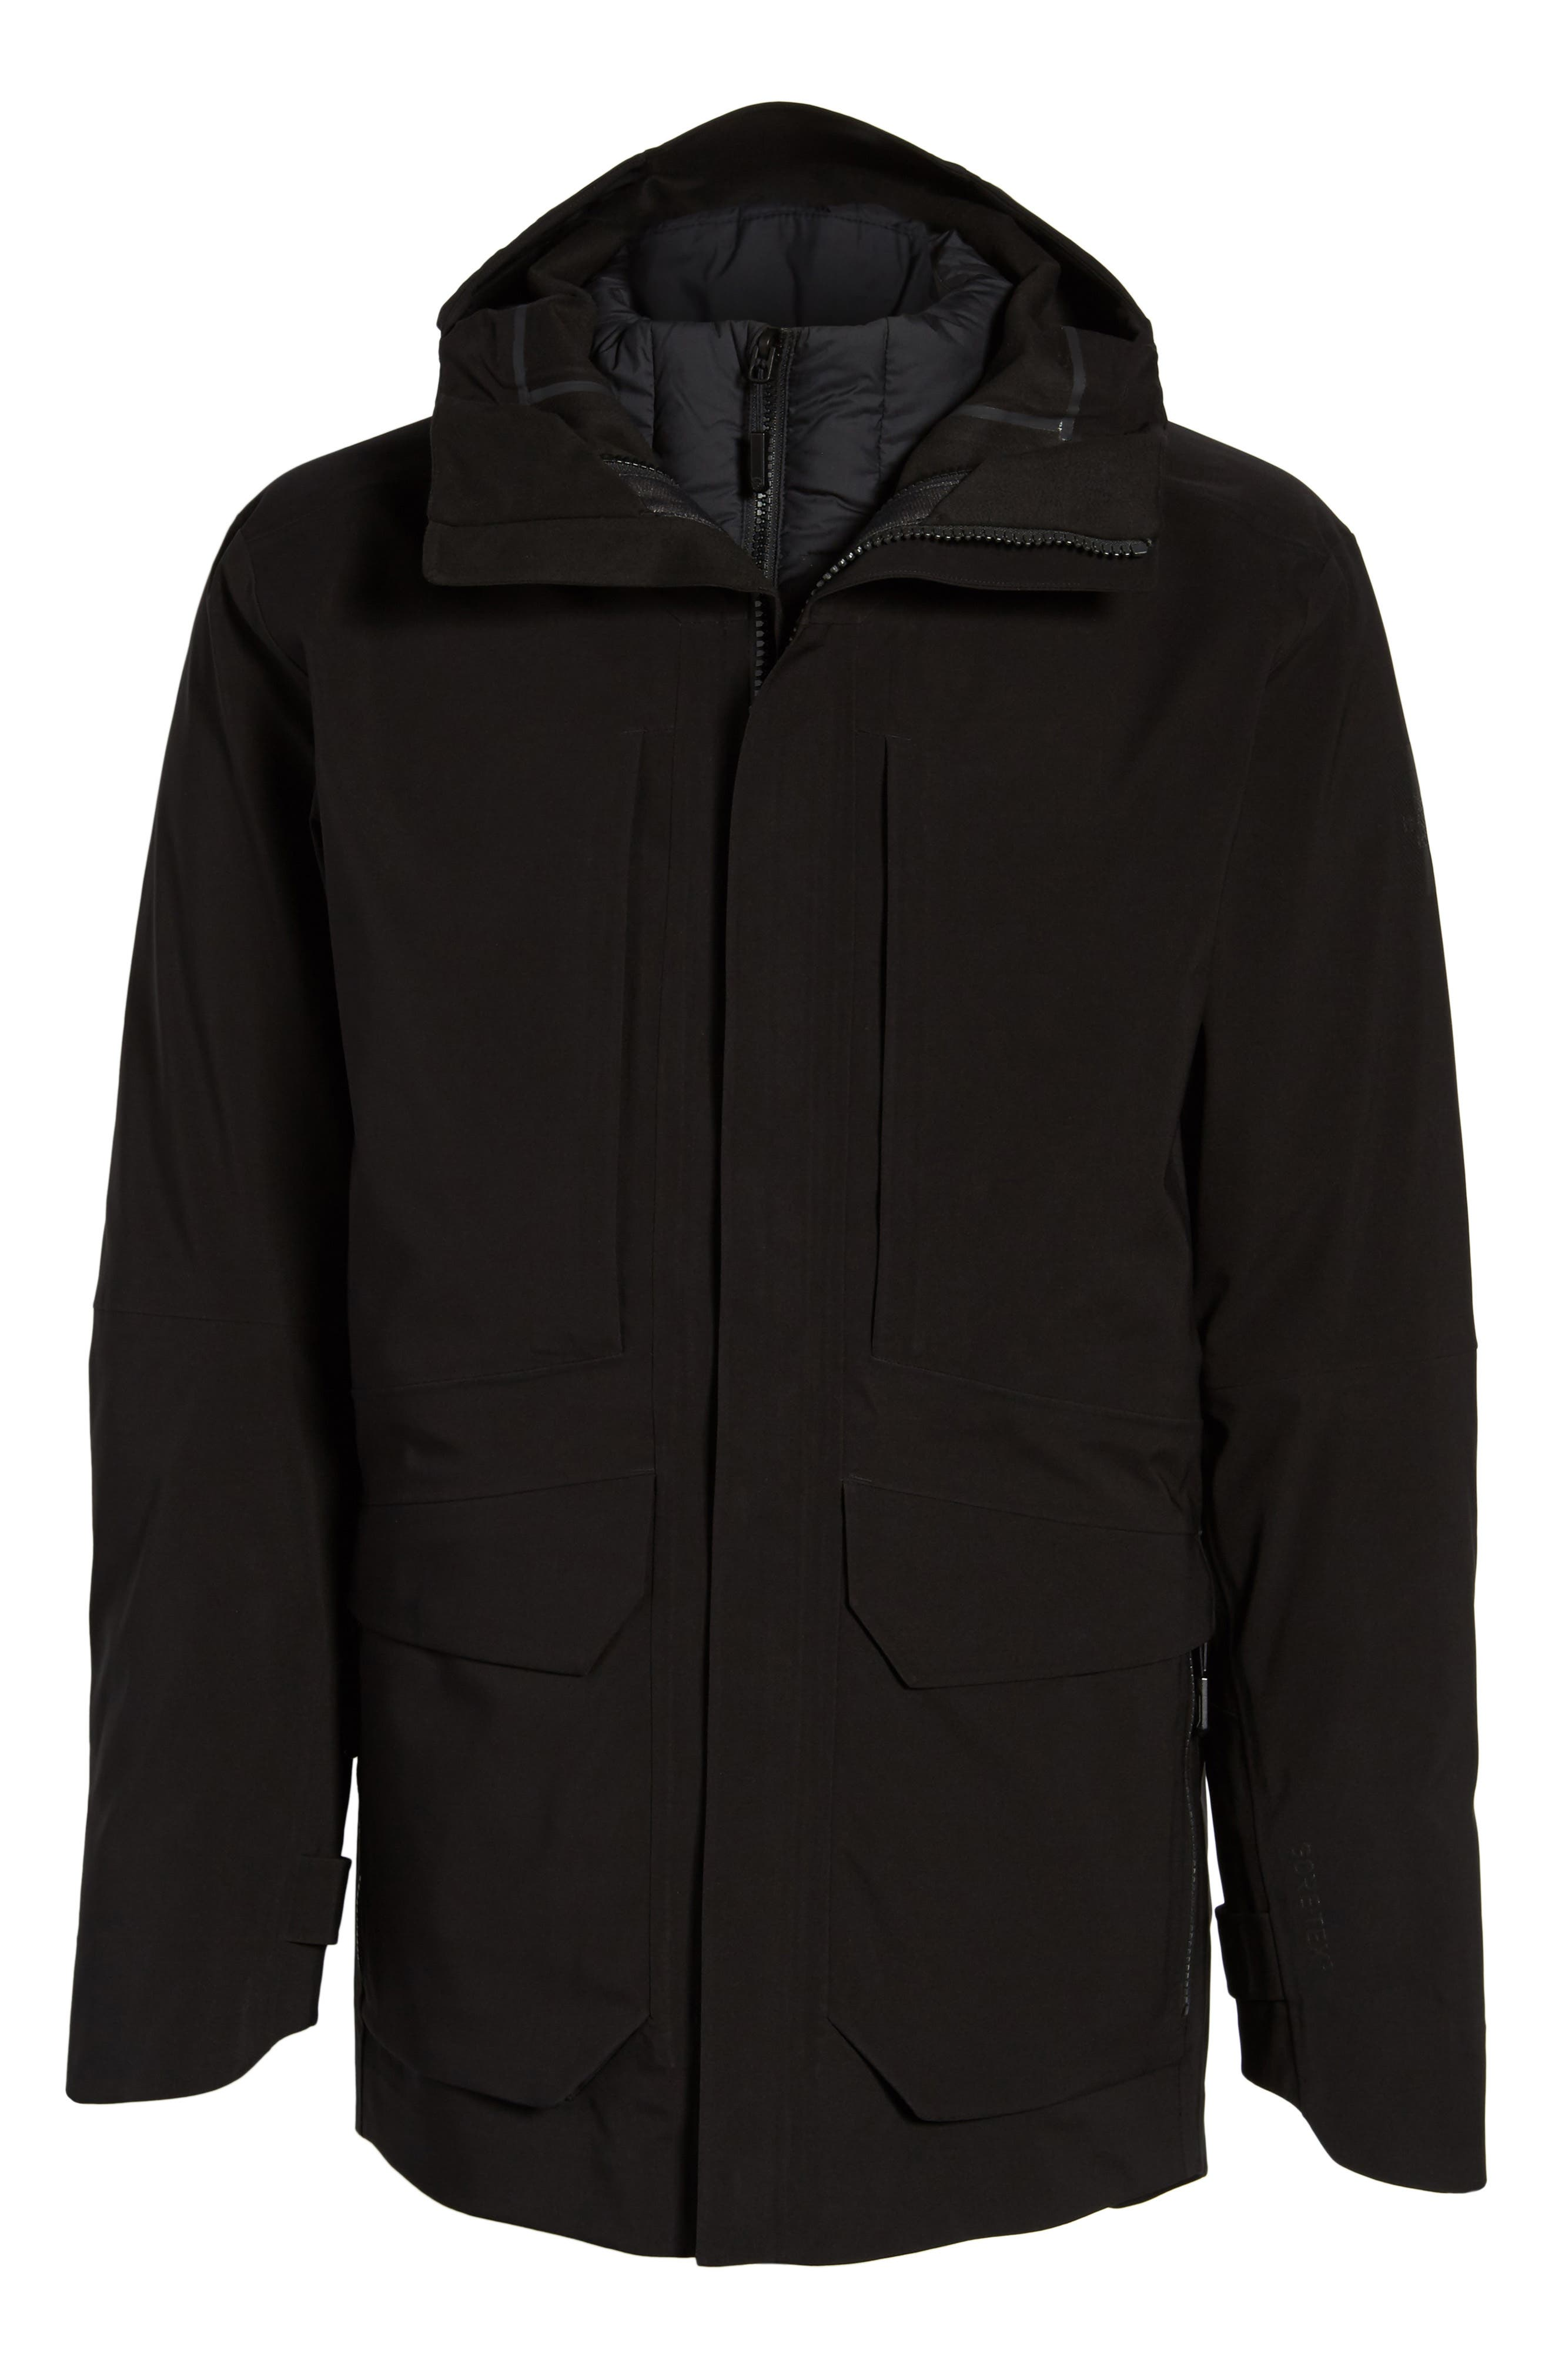 Cryos Gore-Tex<sup>®</sup> Tri-Climate 3-in-1 Jacket,                             Alternate thumbnail 5, color,                             TNF BLACK